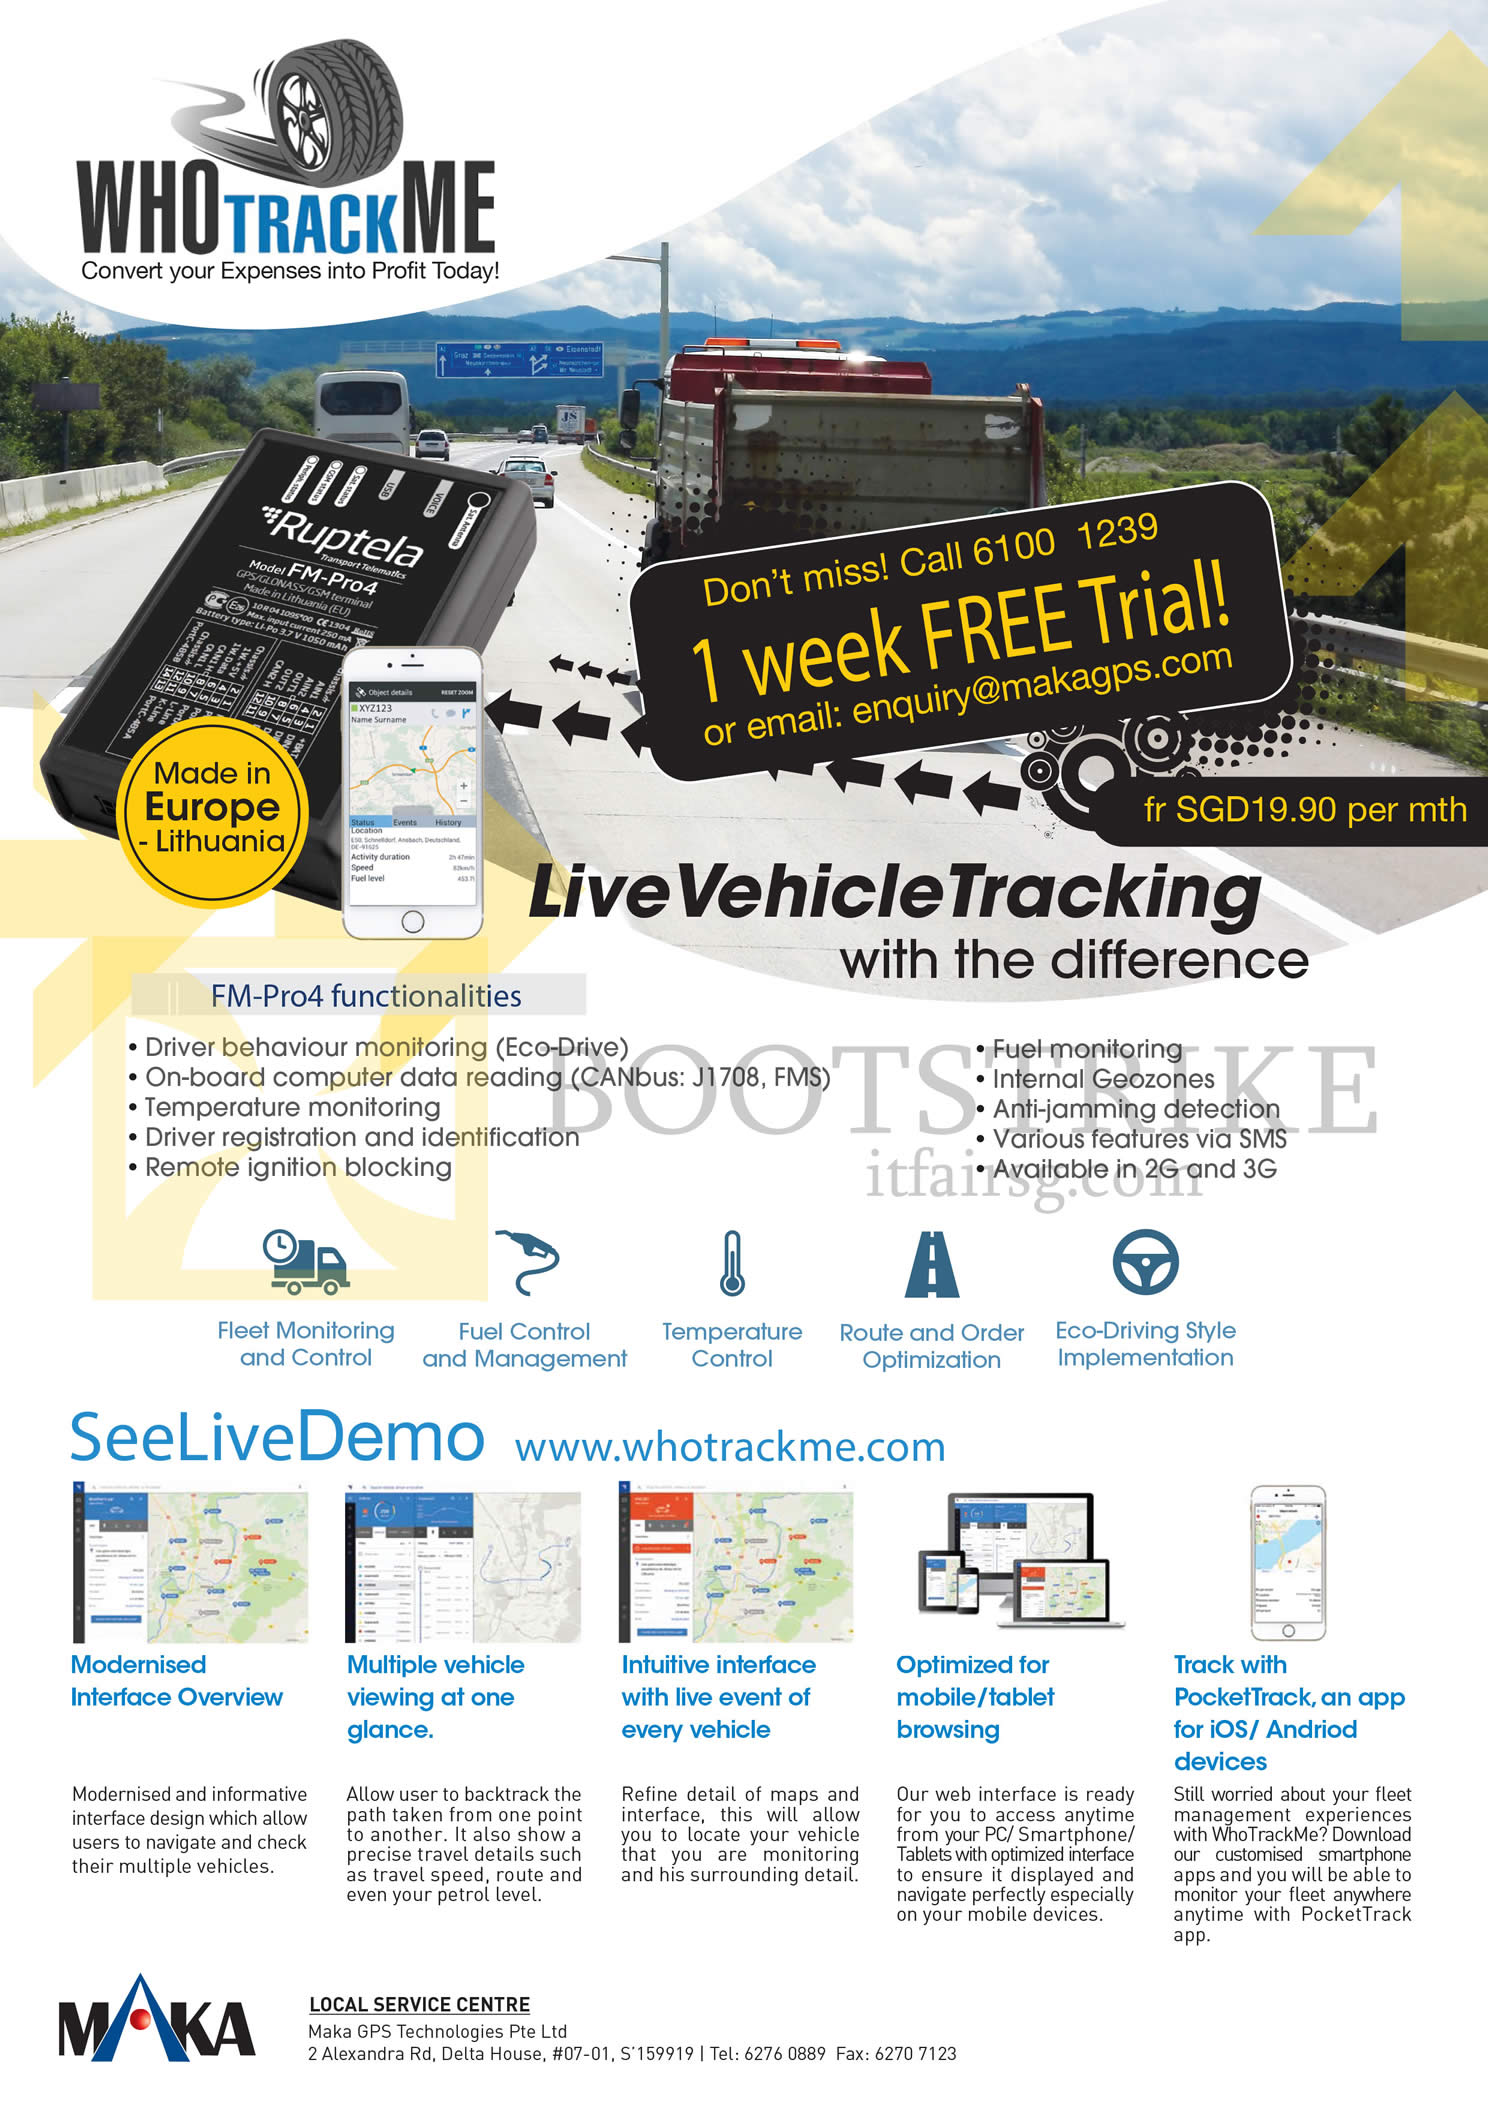 COMEX 2016 price list image brochure of Maka GPS Marbella Live Vehicle Tracking FM-Pro4